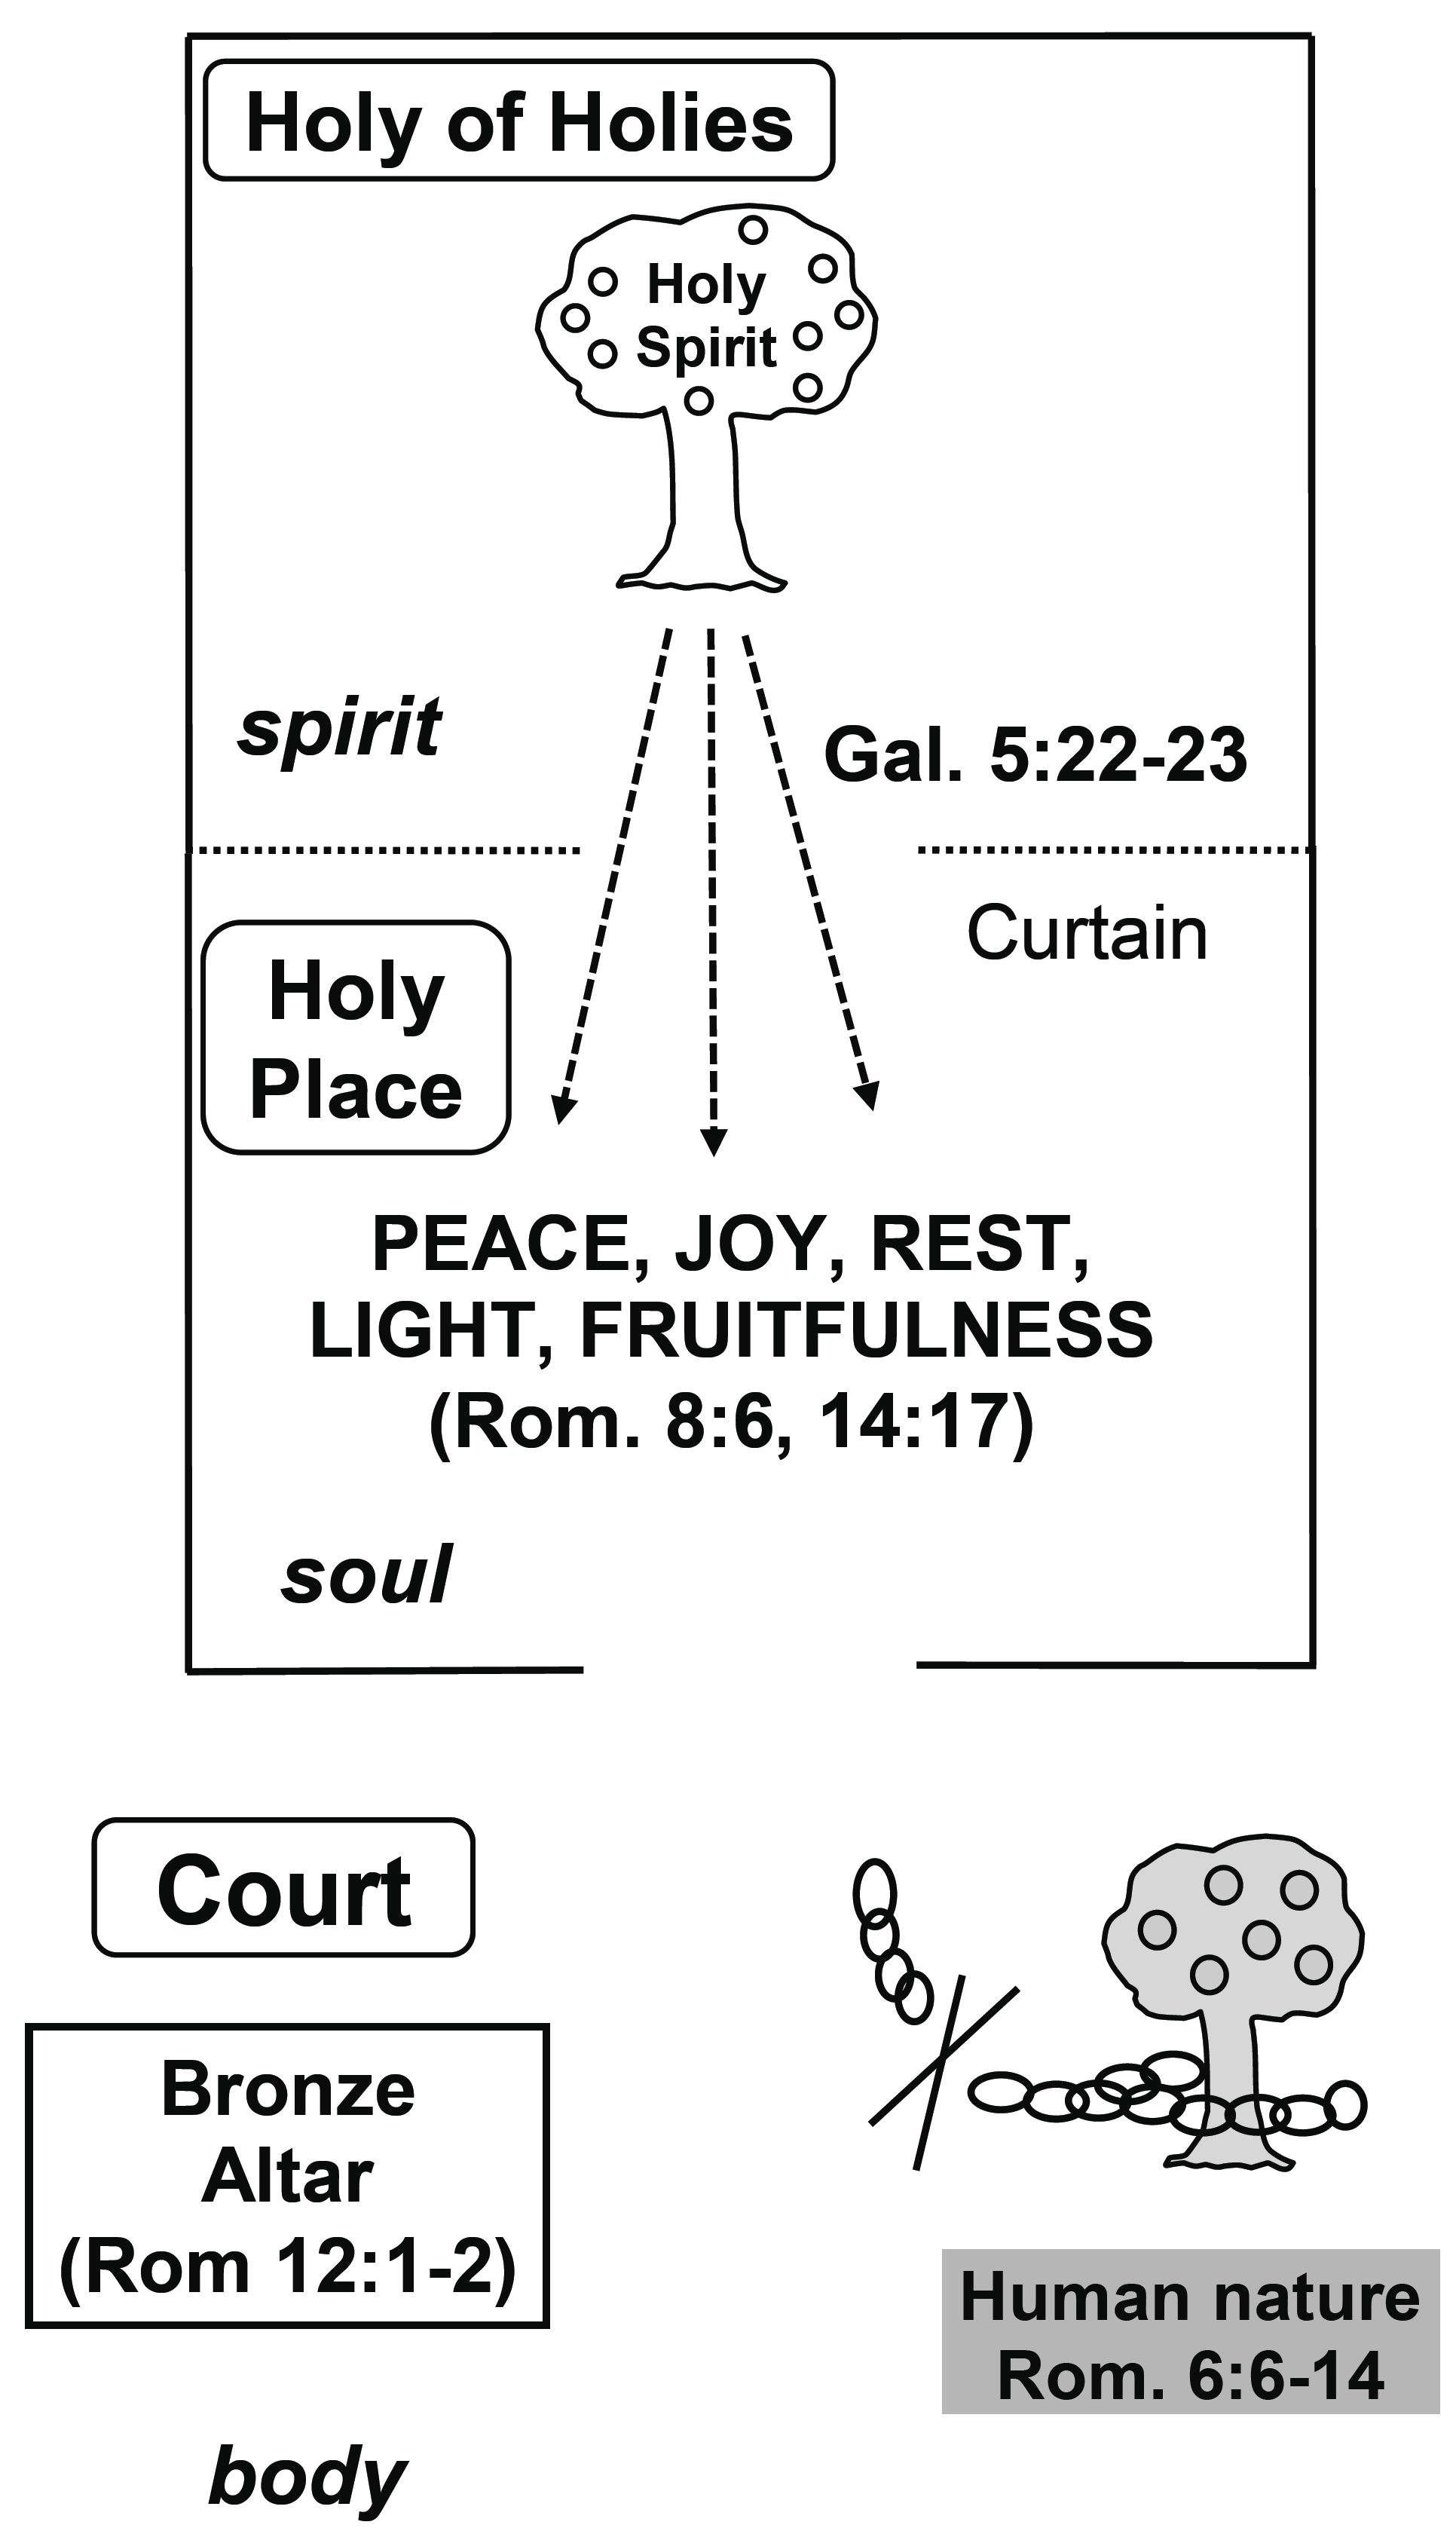 Walking in Fellowship with the Holy Spirit